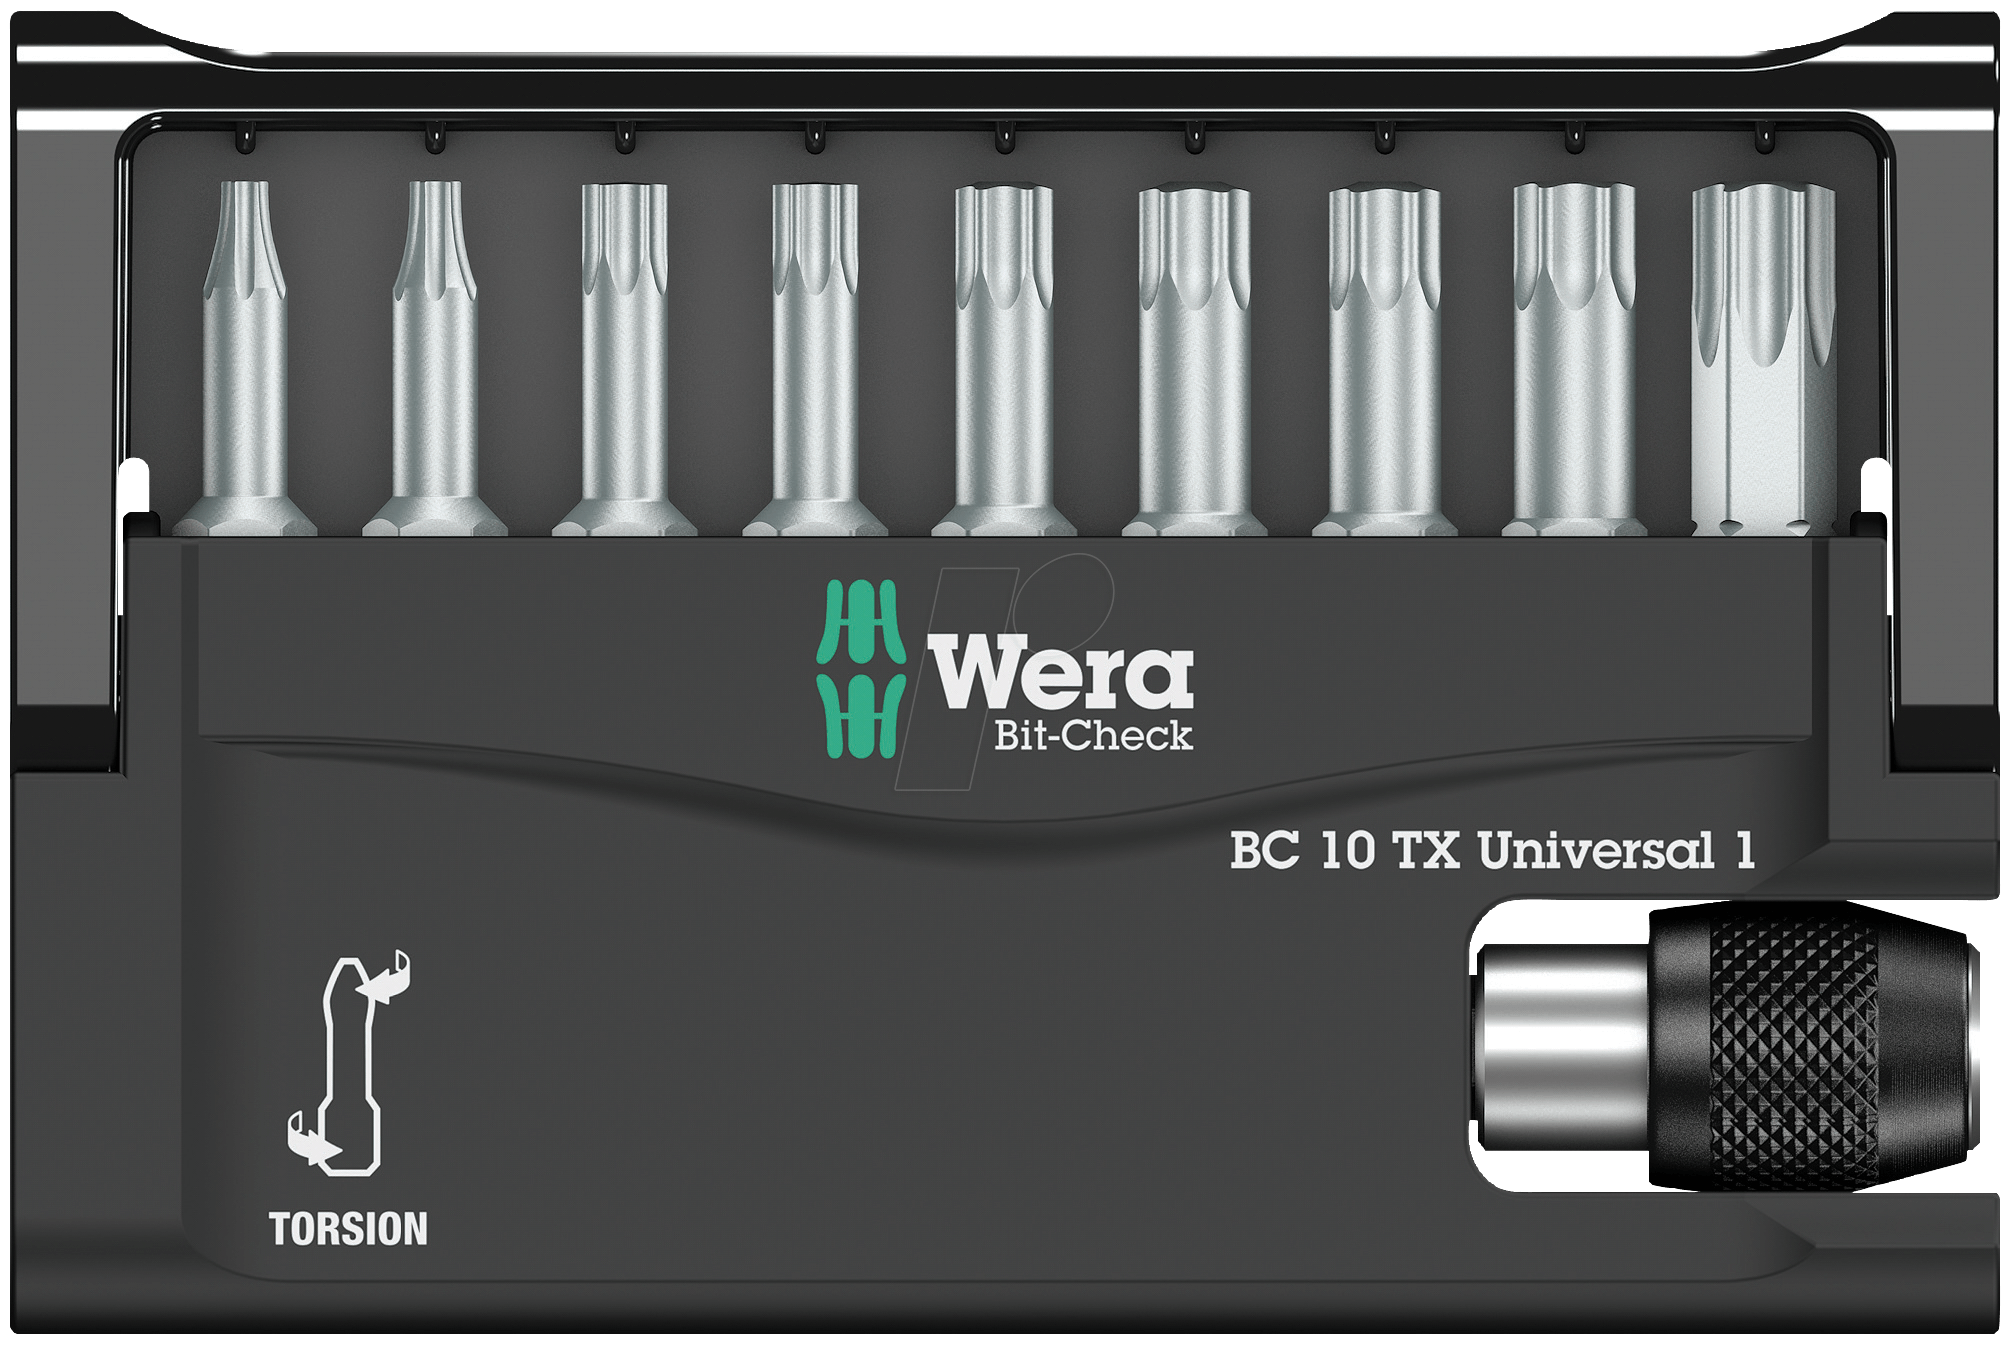 wera 8167 6 torx wera tz bit check torx 9 piece at. Black Bedroom Furniture Sets. Home Design Ideas